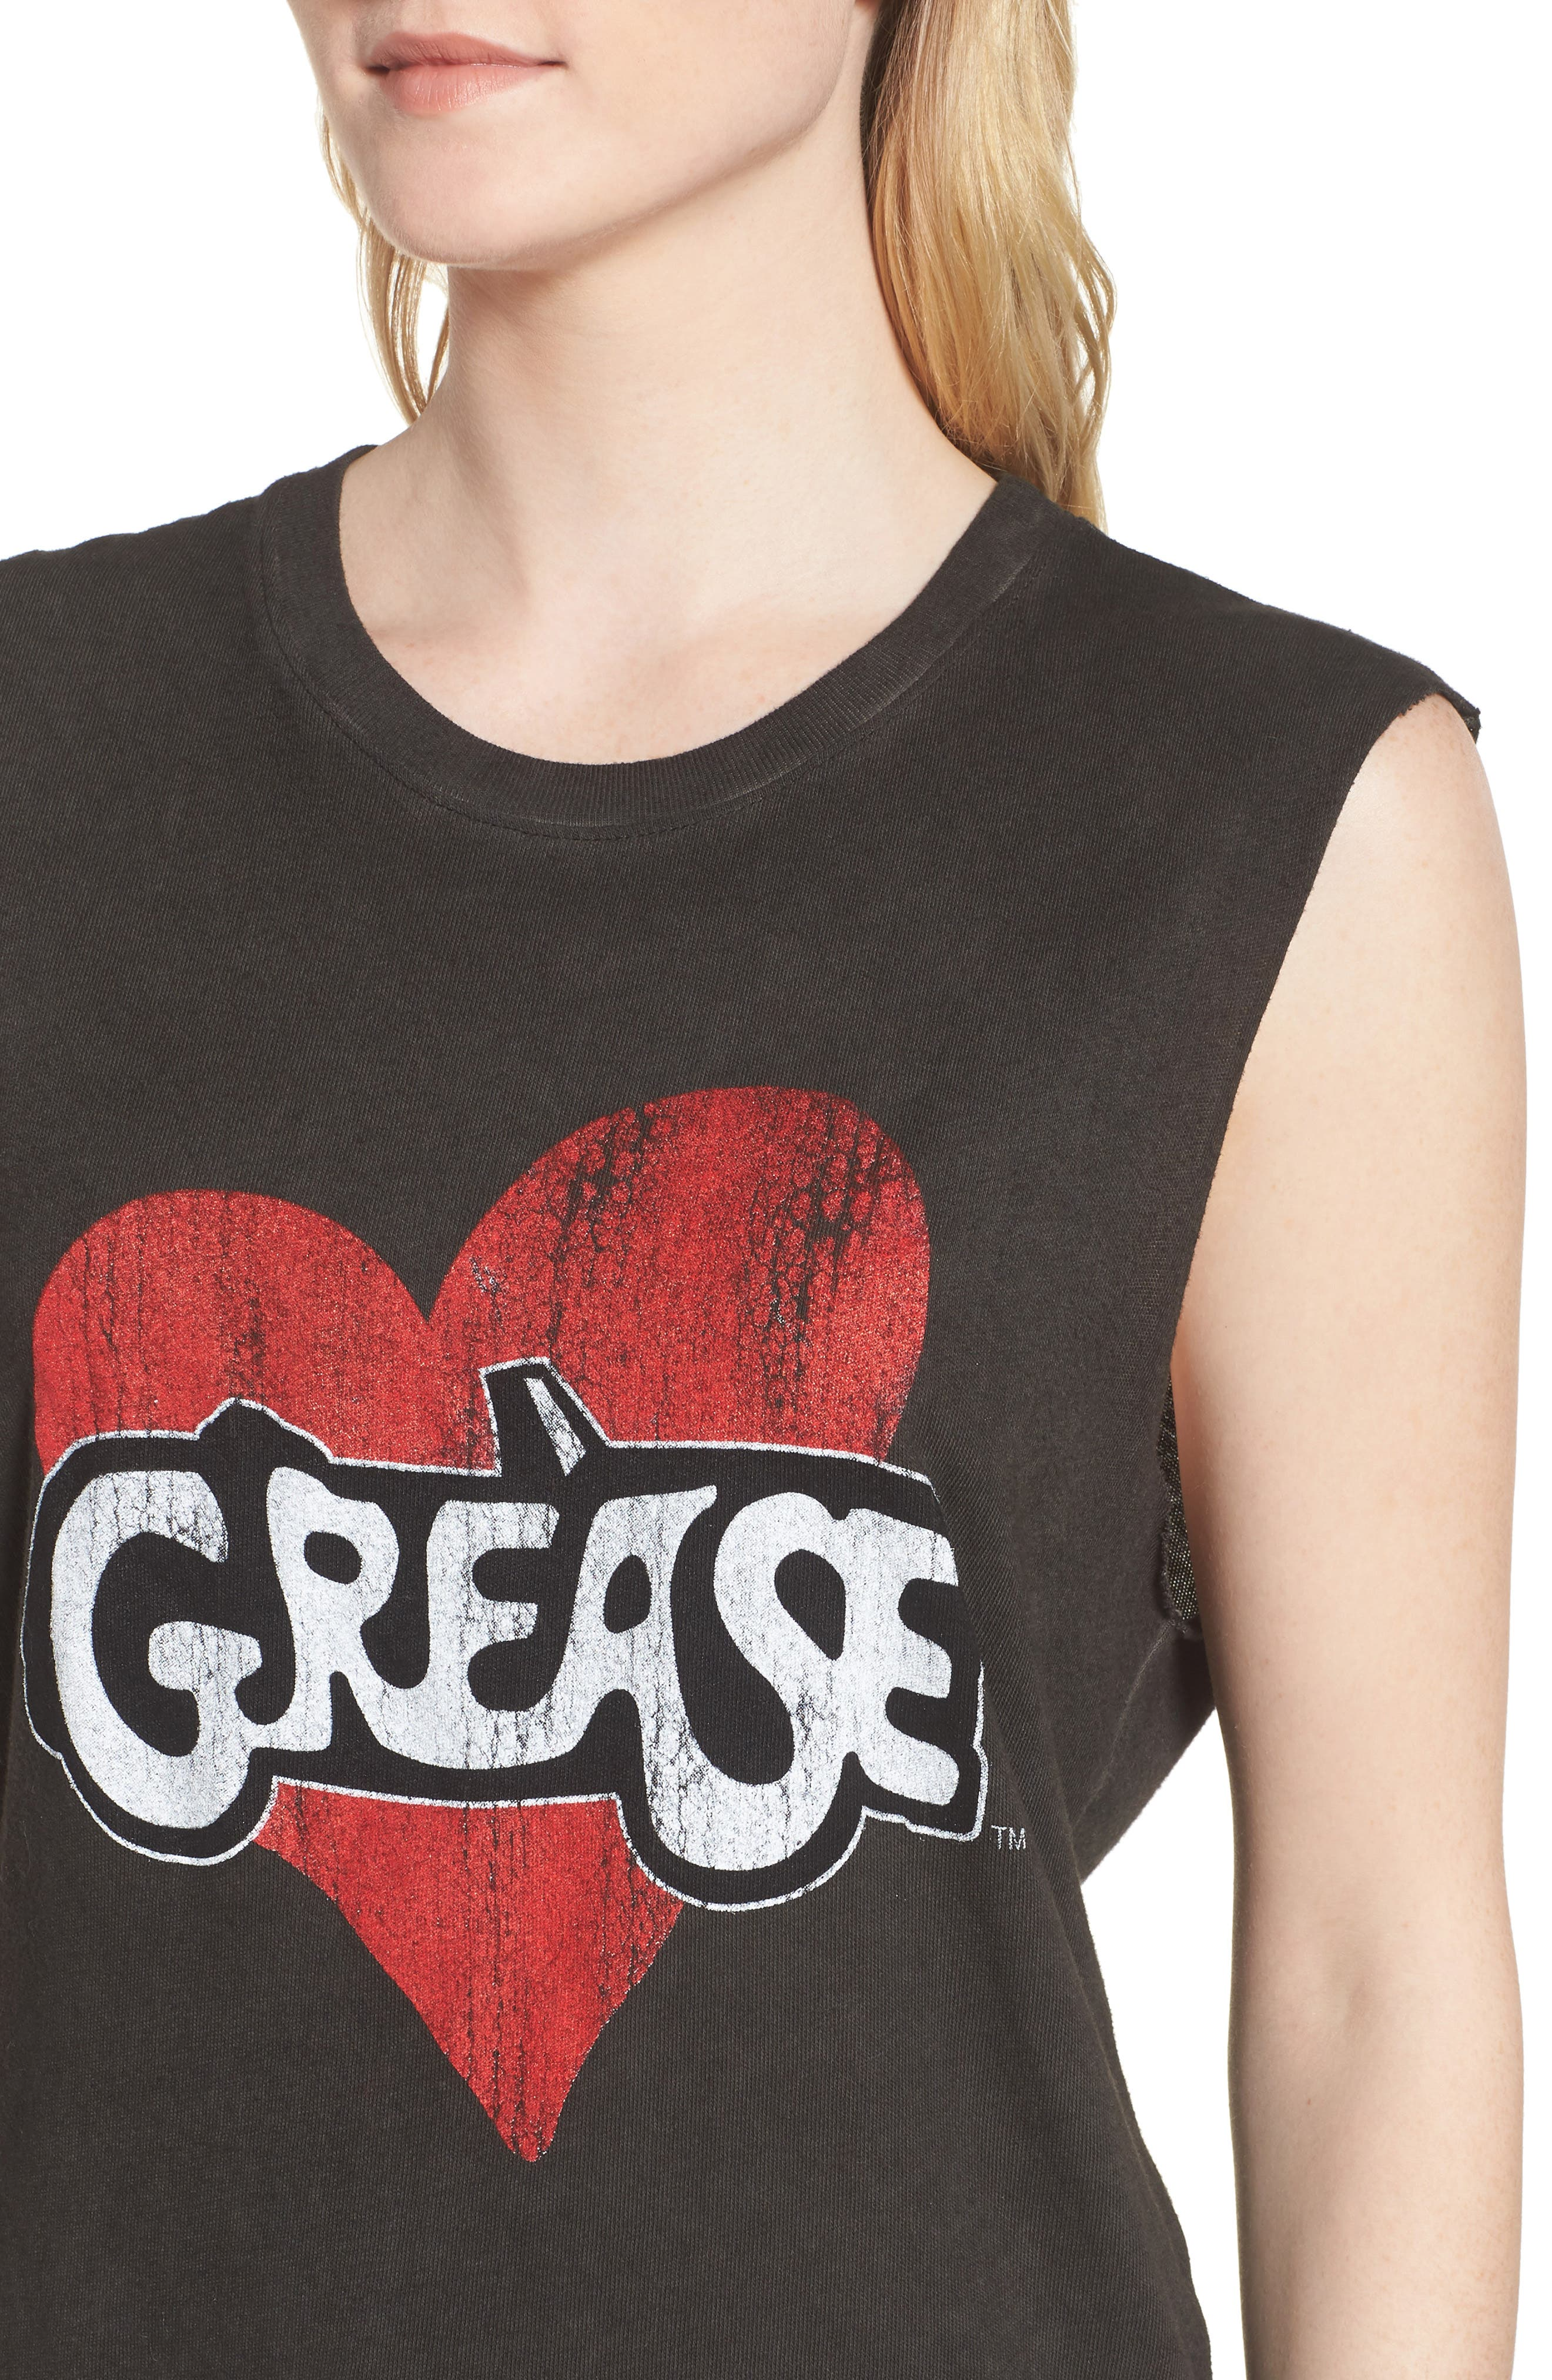 x Grease Muscle Tee,                             Alternate thumbnail 4, color,                             Vintage Black